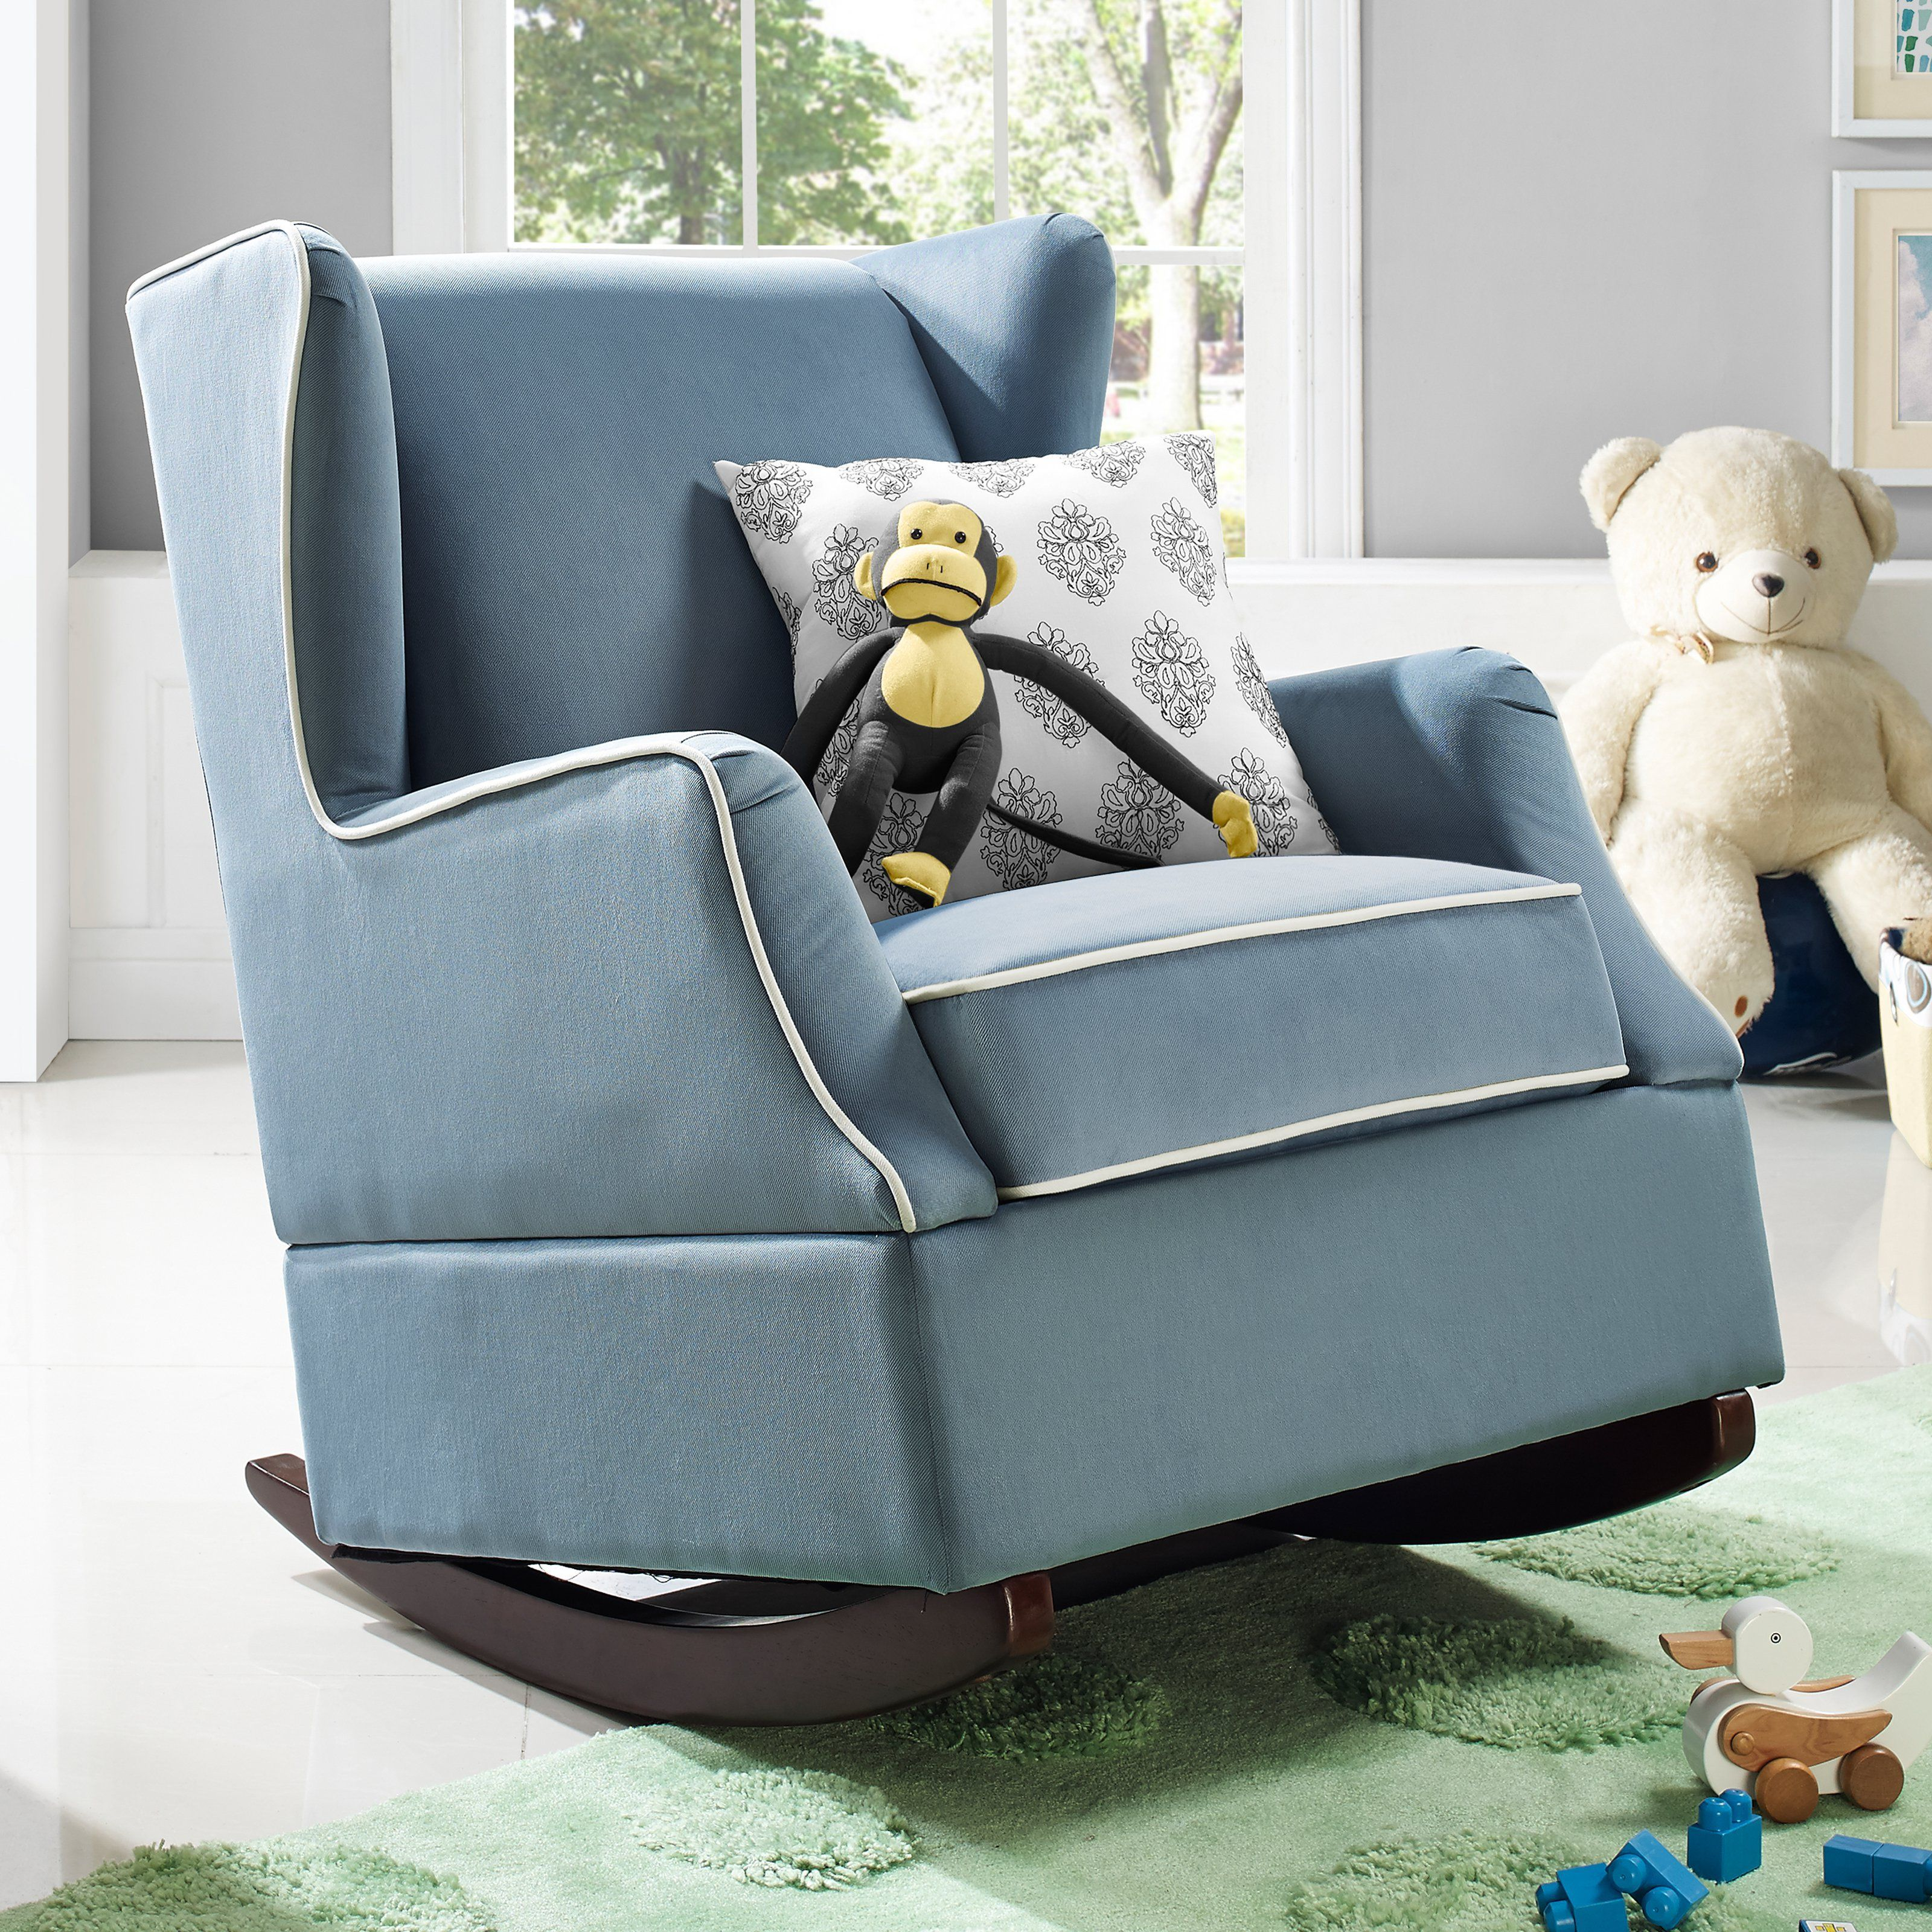 Baby Relax Hudson Wingback Rocker Your child will always